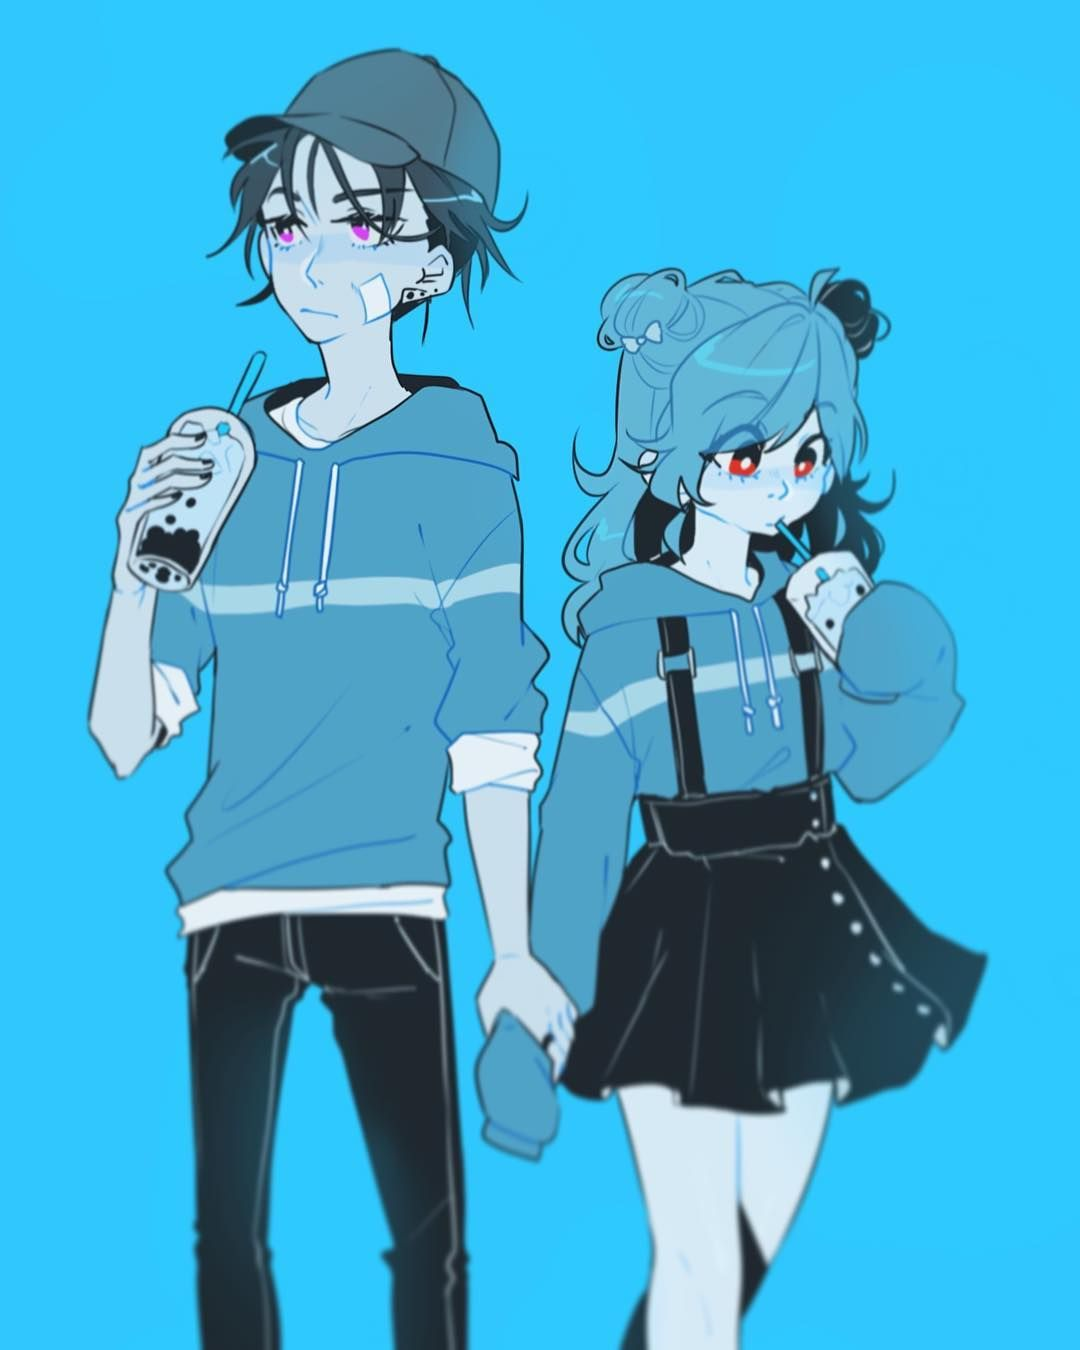 Boba Date Lovelyfriendship Anime Art